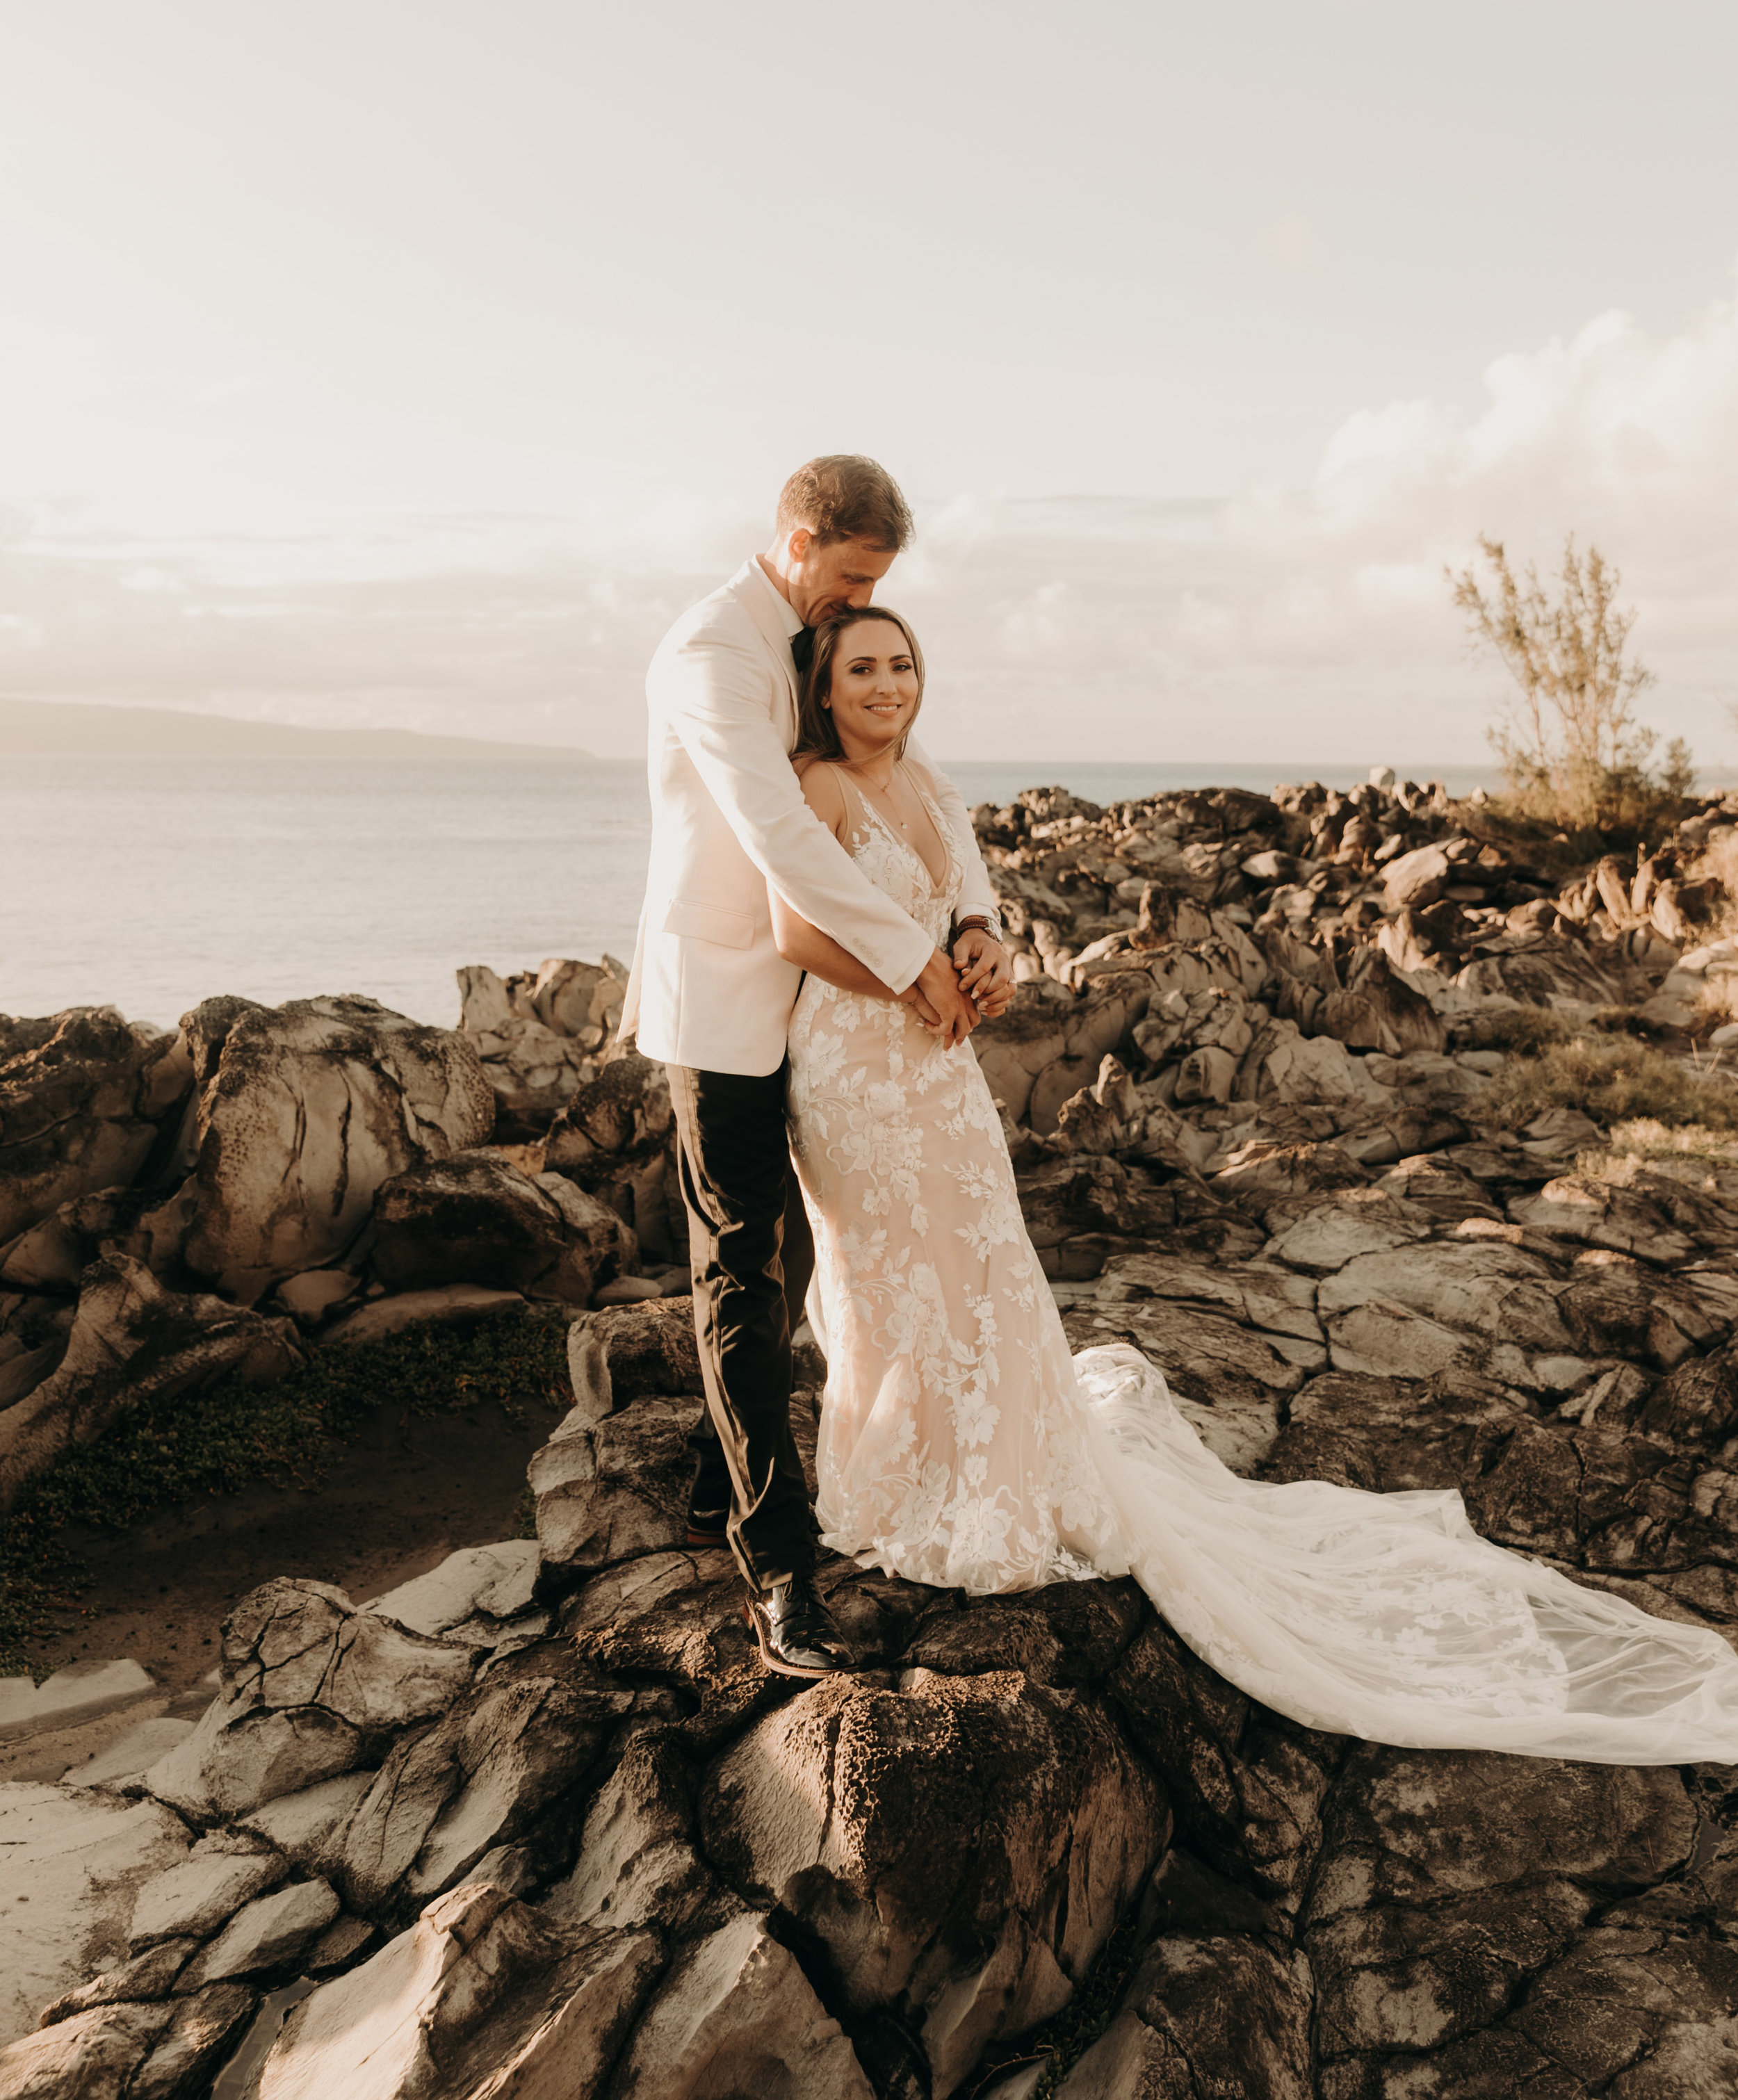 Tropical Maui, Hawaii wedding at The Ritz Carlton Kapalua   Wedding